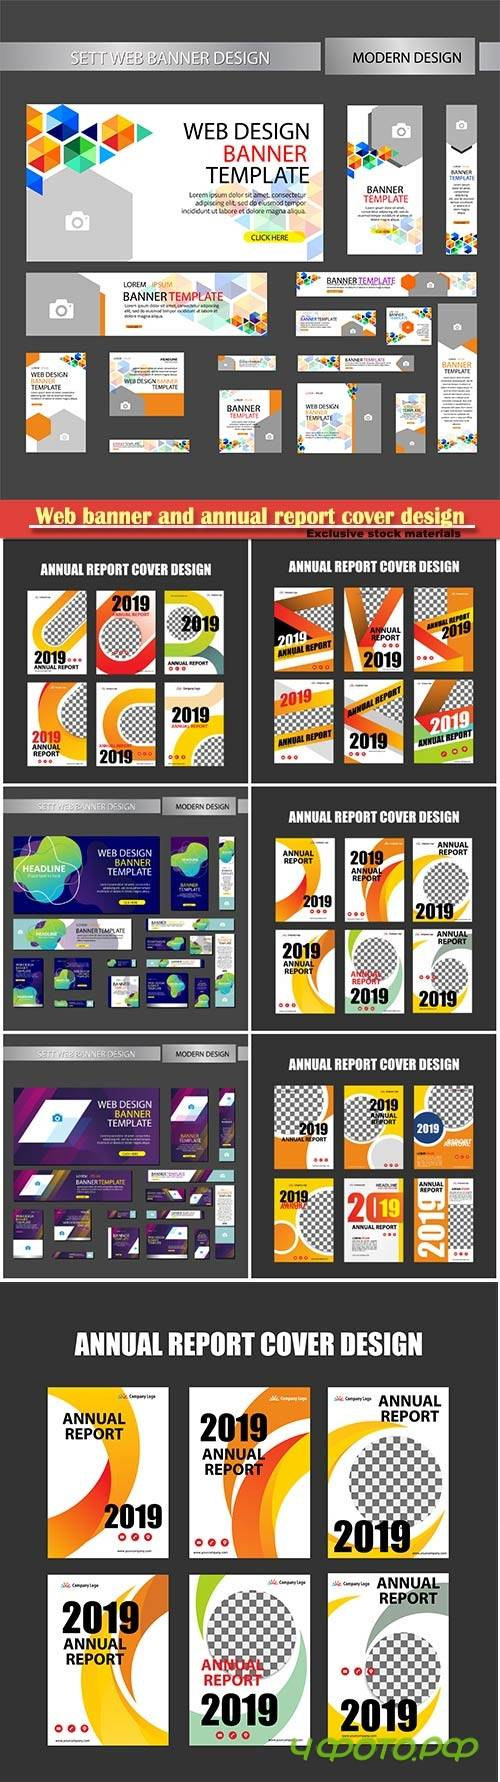 Set web banner and annual report cover design vector template